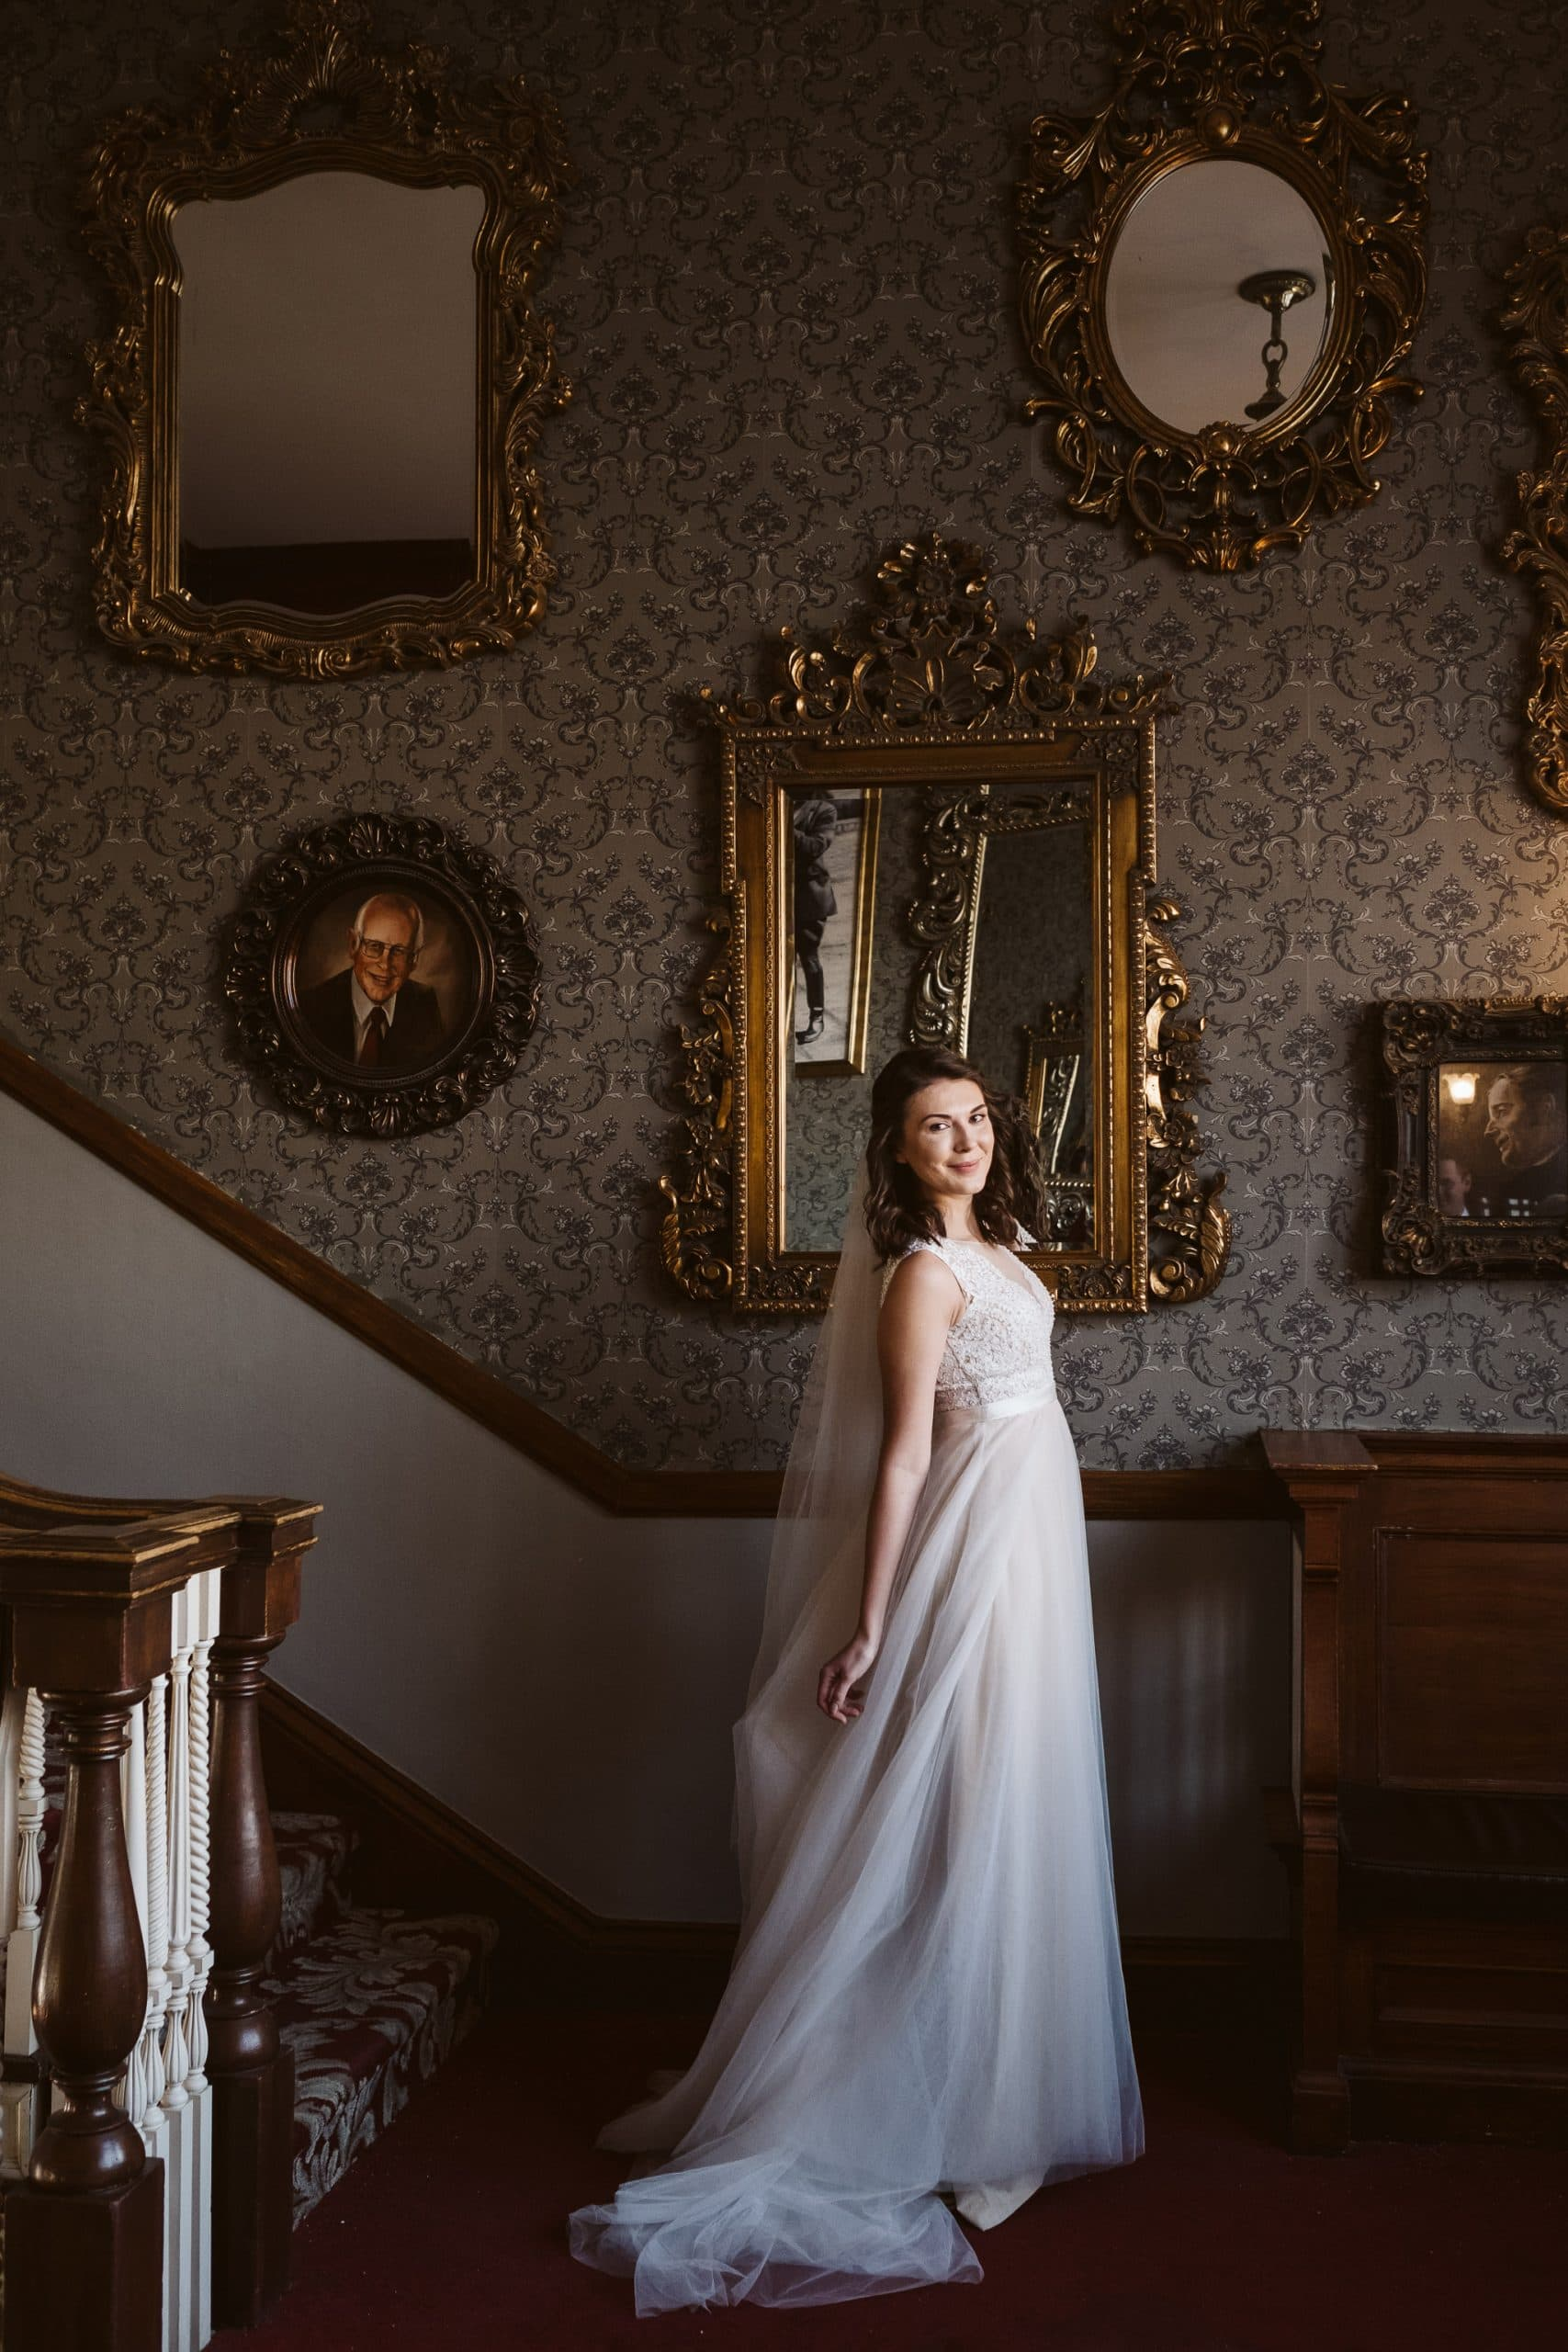 Bride portrait at the Stanley Hotel wedding in Estes Park.